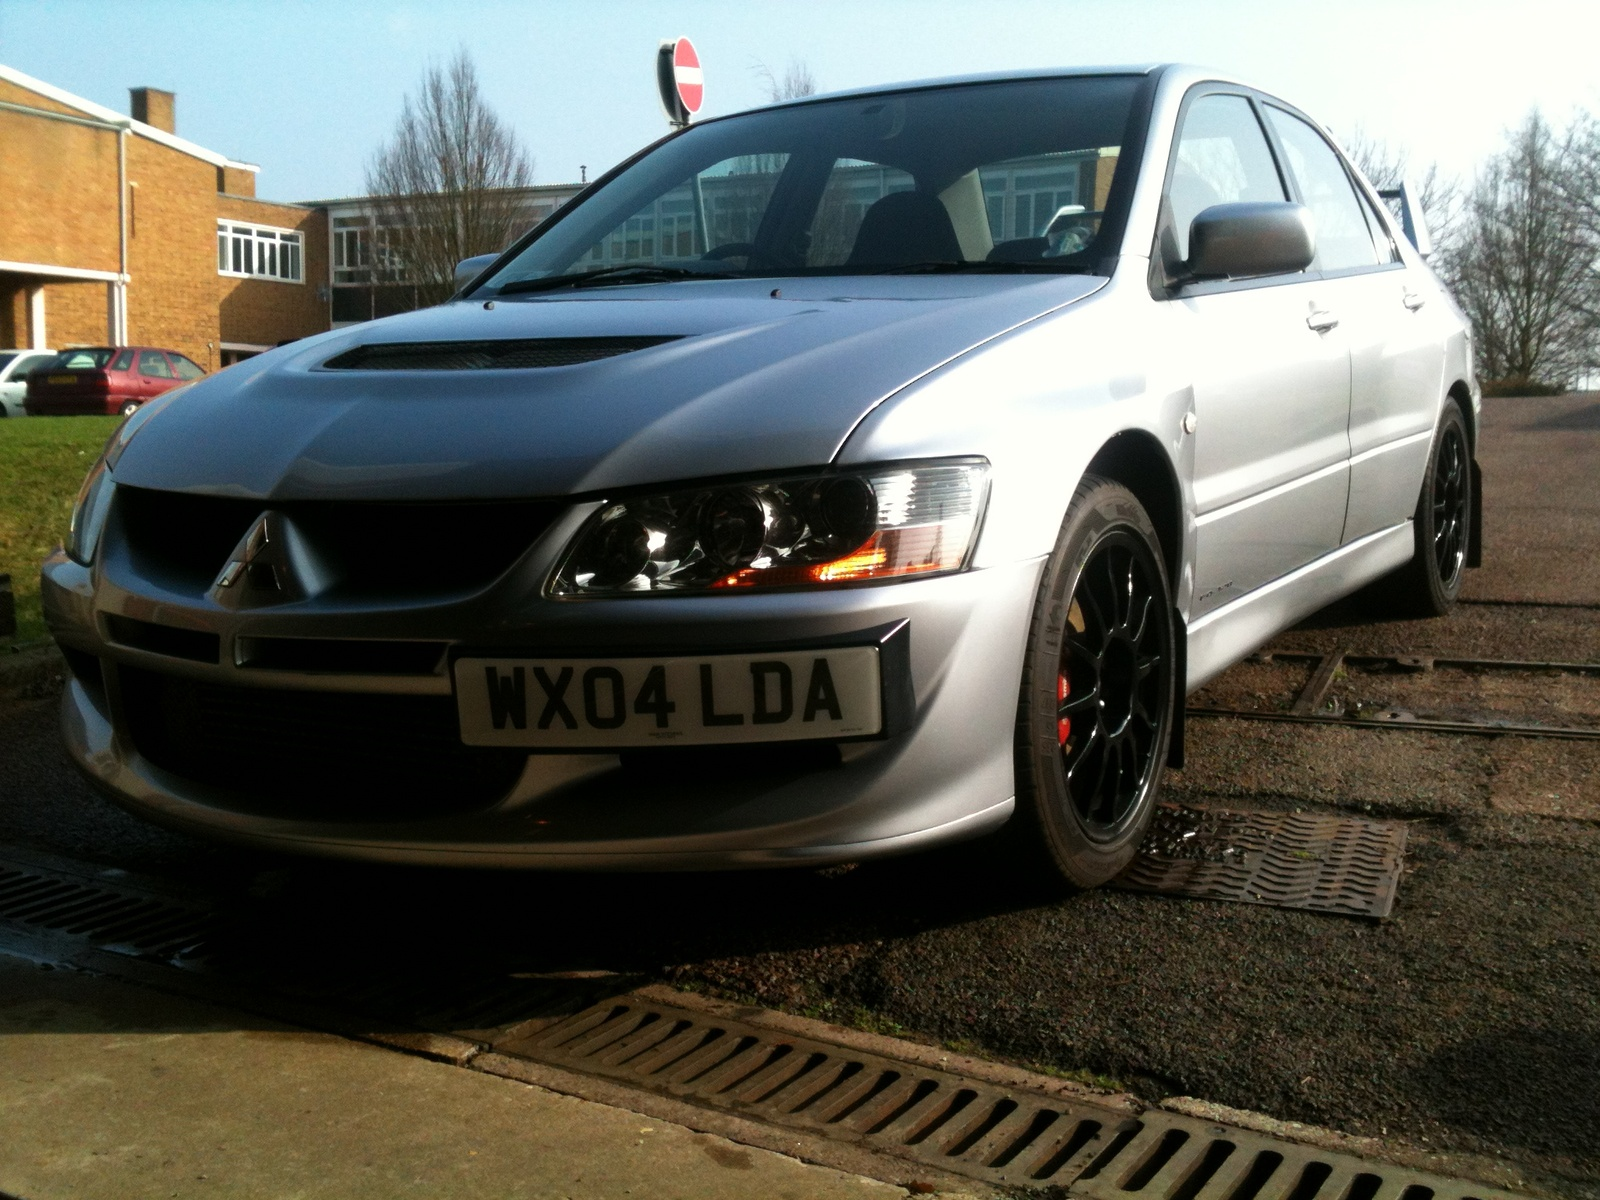 2008 Mitsubishi Lancer Evolution MR picture